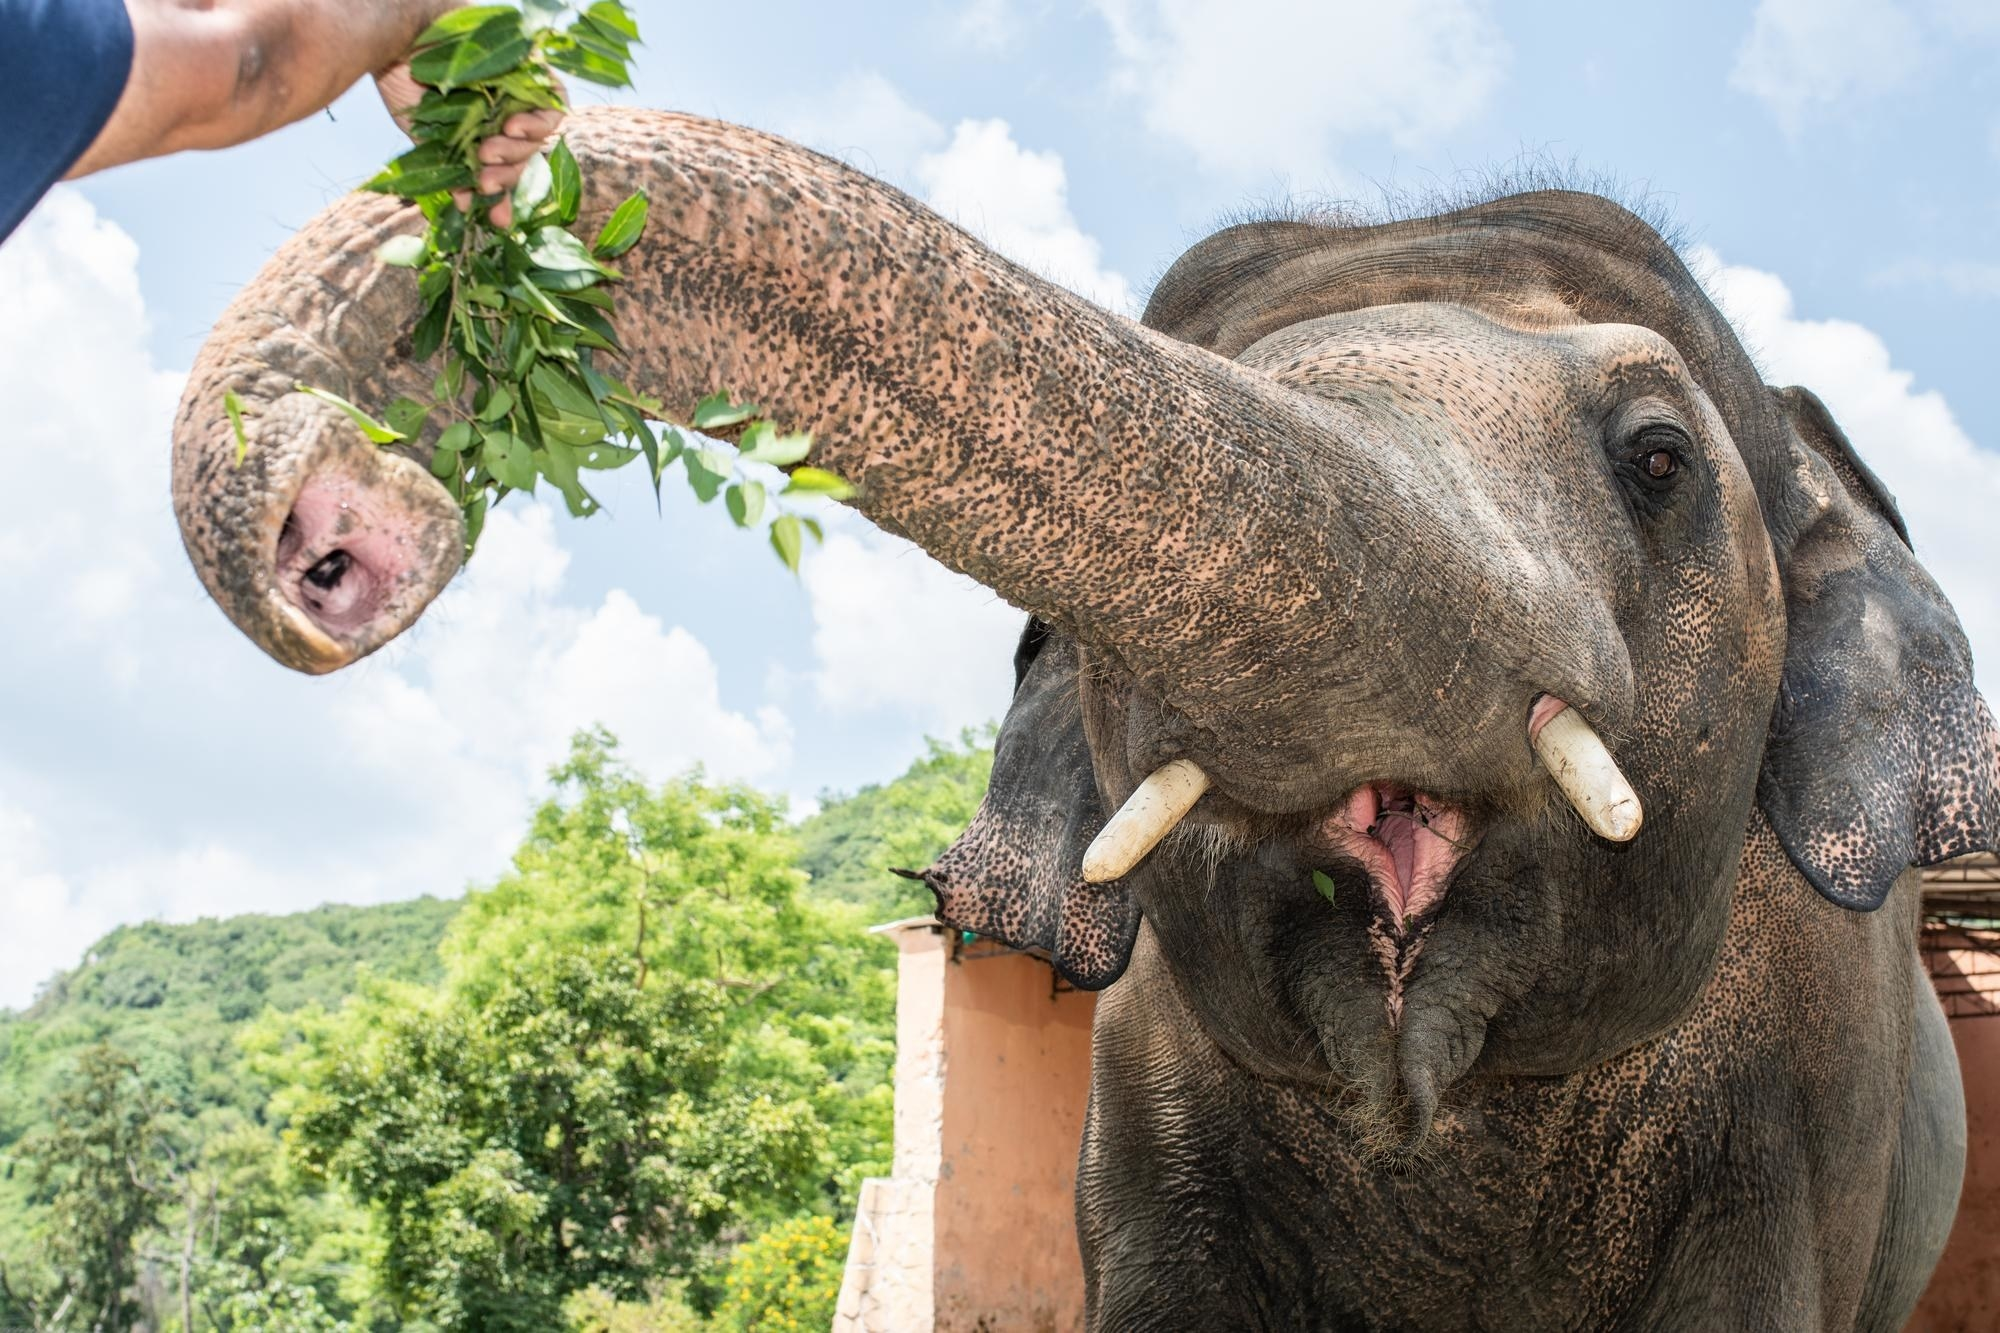 Photo of Kaavan the elephant eating some greens